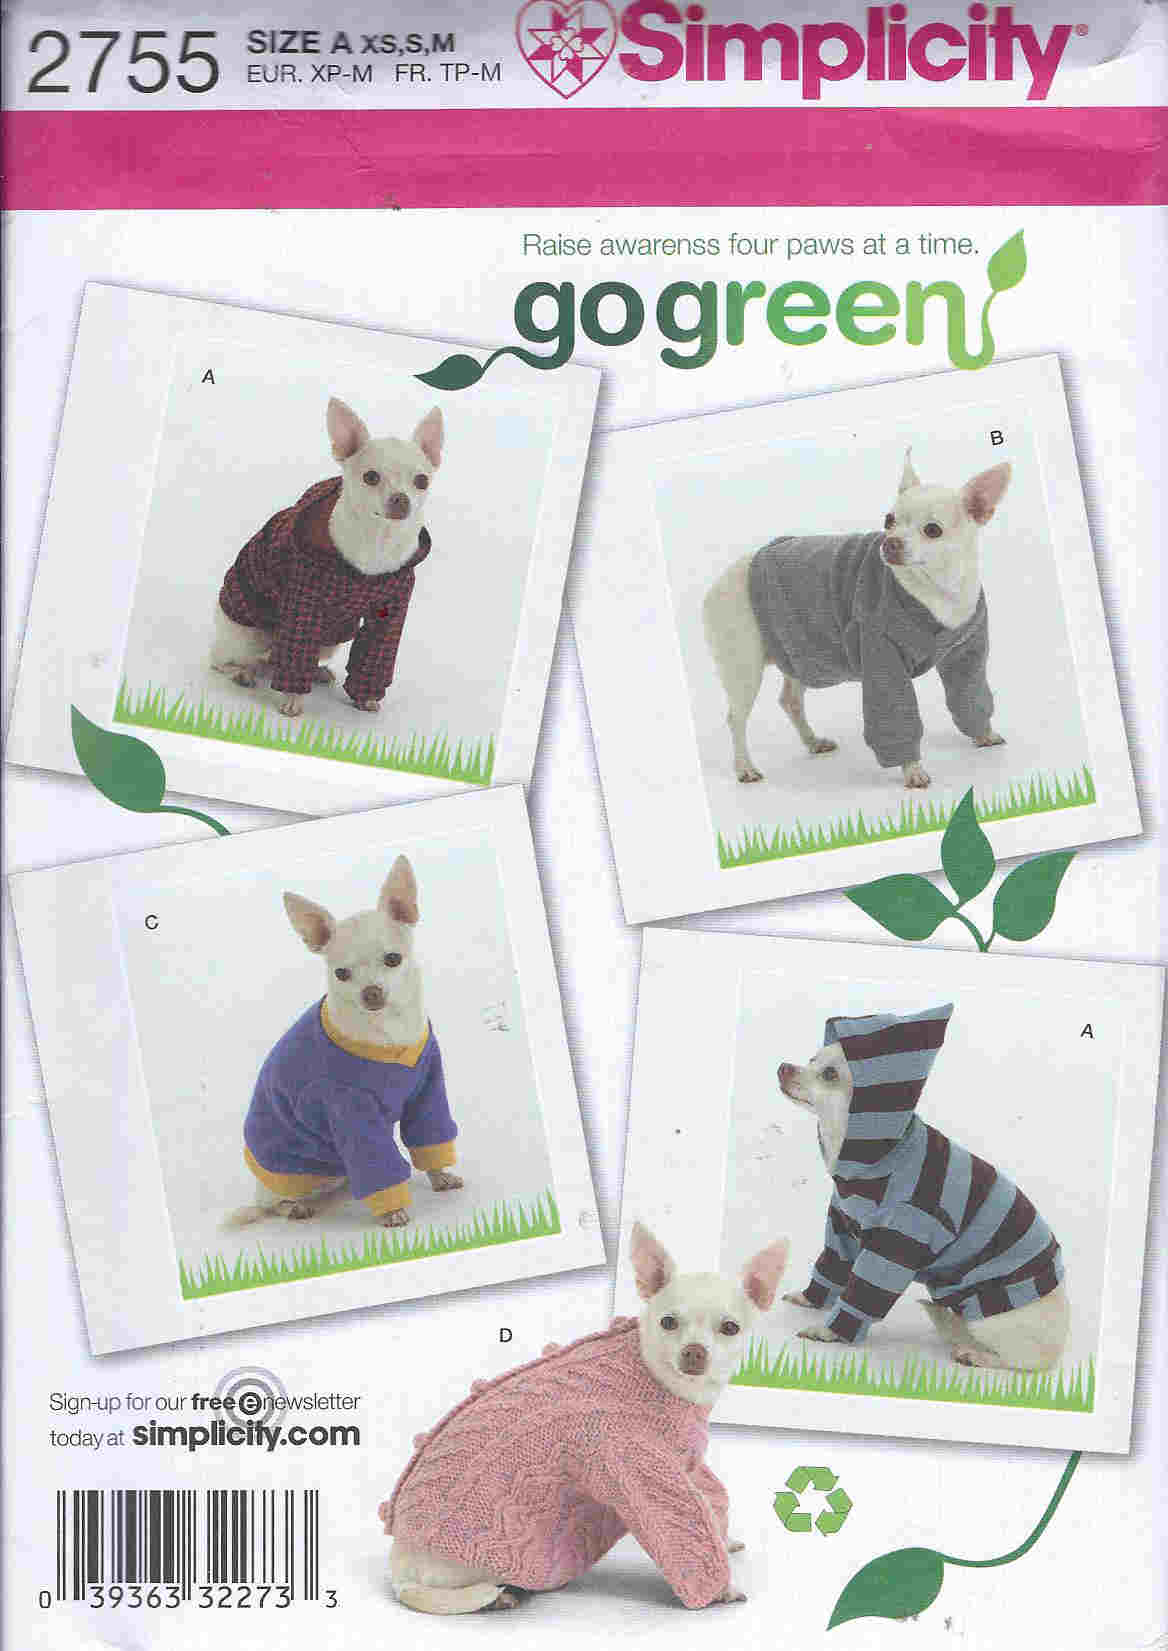 Cat Sweater Pattern Sewing : sweater, pattern, sewing, DellaJane, Sewing, Patterns, Cats,, Other